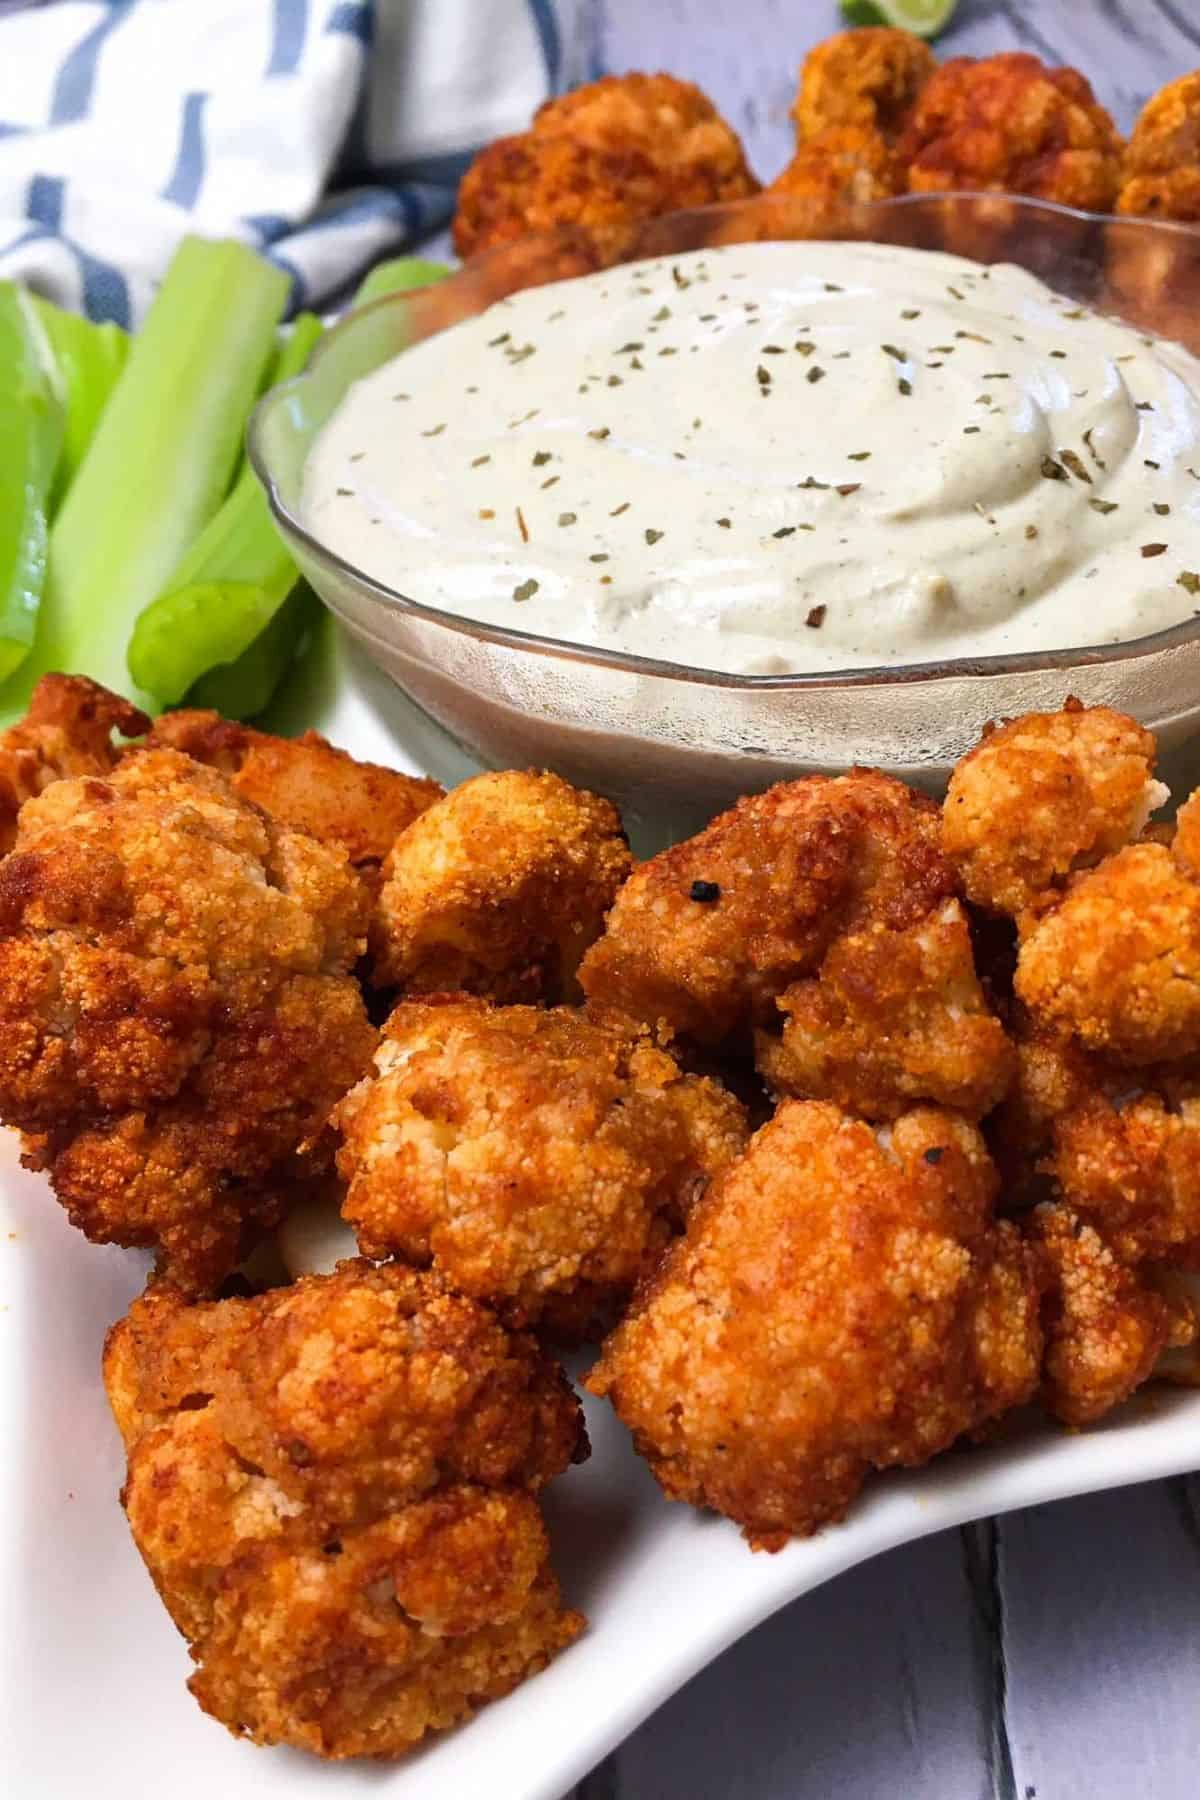 Tray of buffalo cauliflower bites with bowl of ranch dip in the middle.